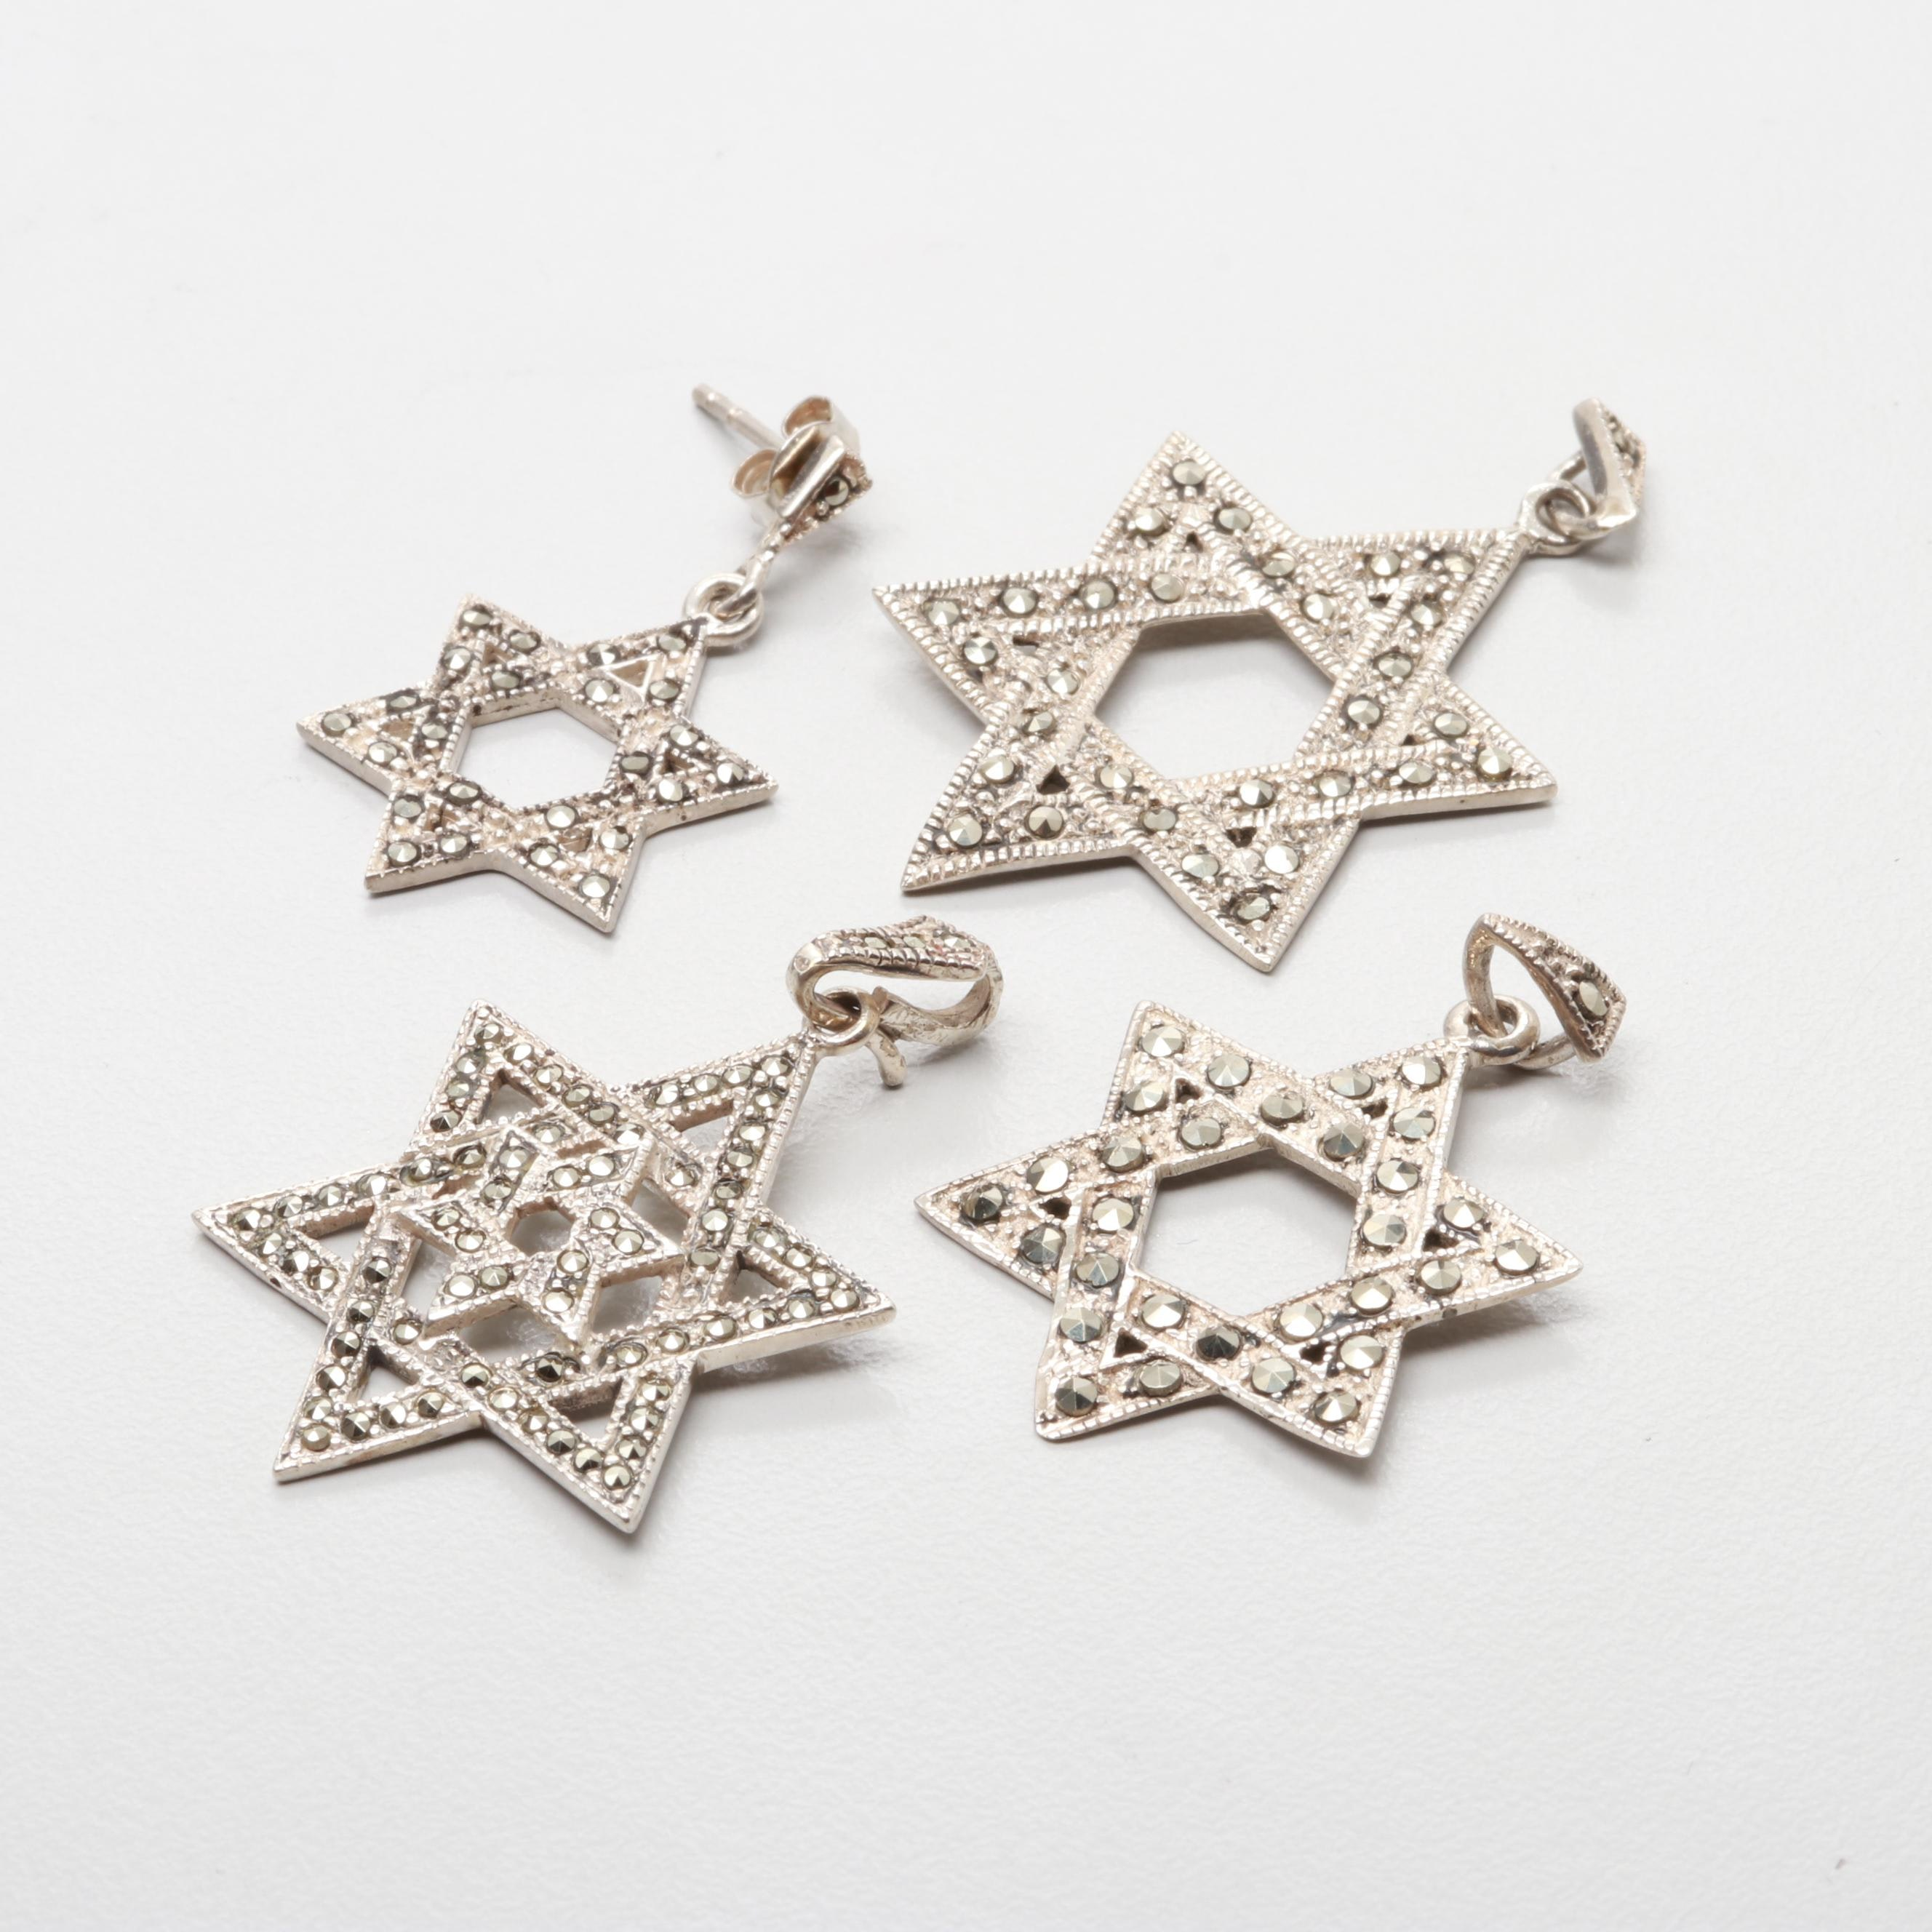 Sterling Silver Marcasite Star Of David Pendants and Earring